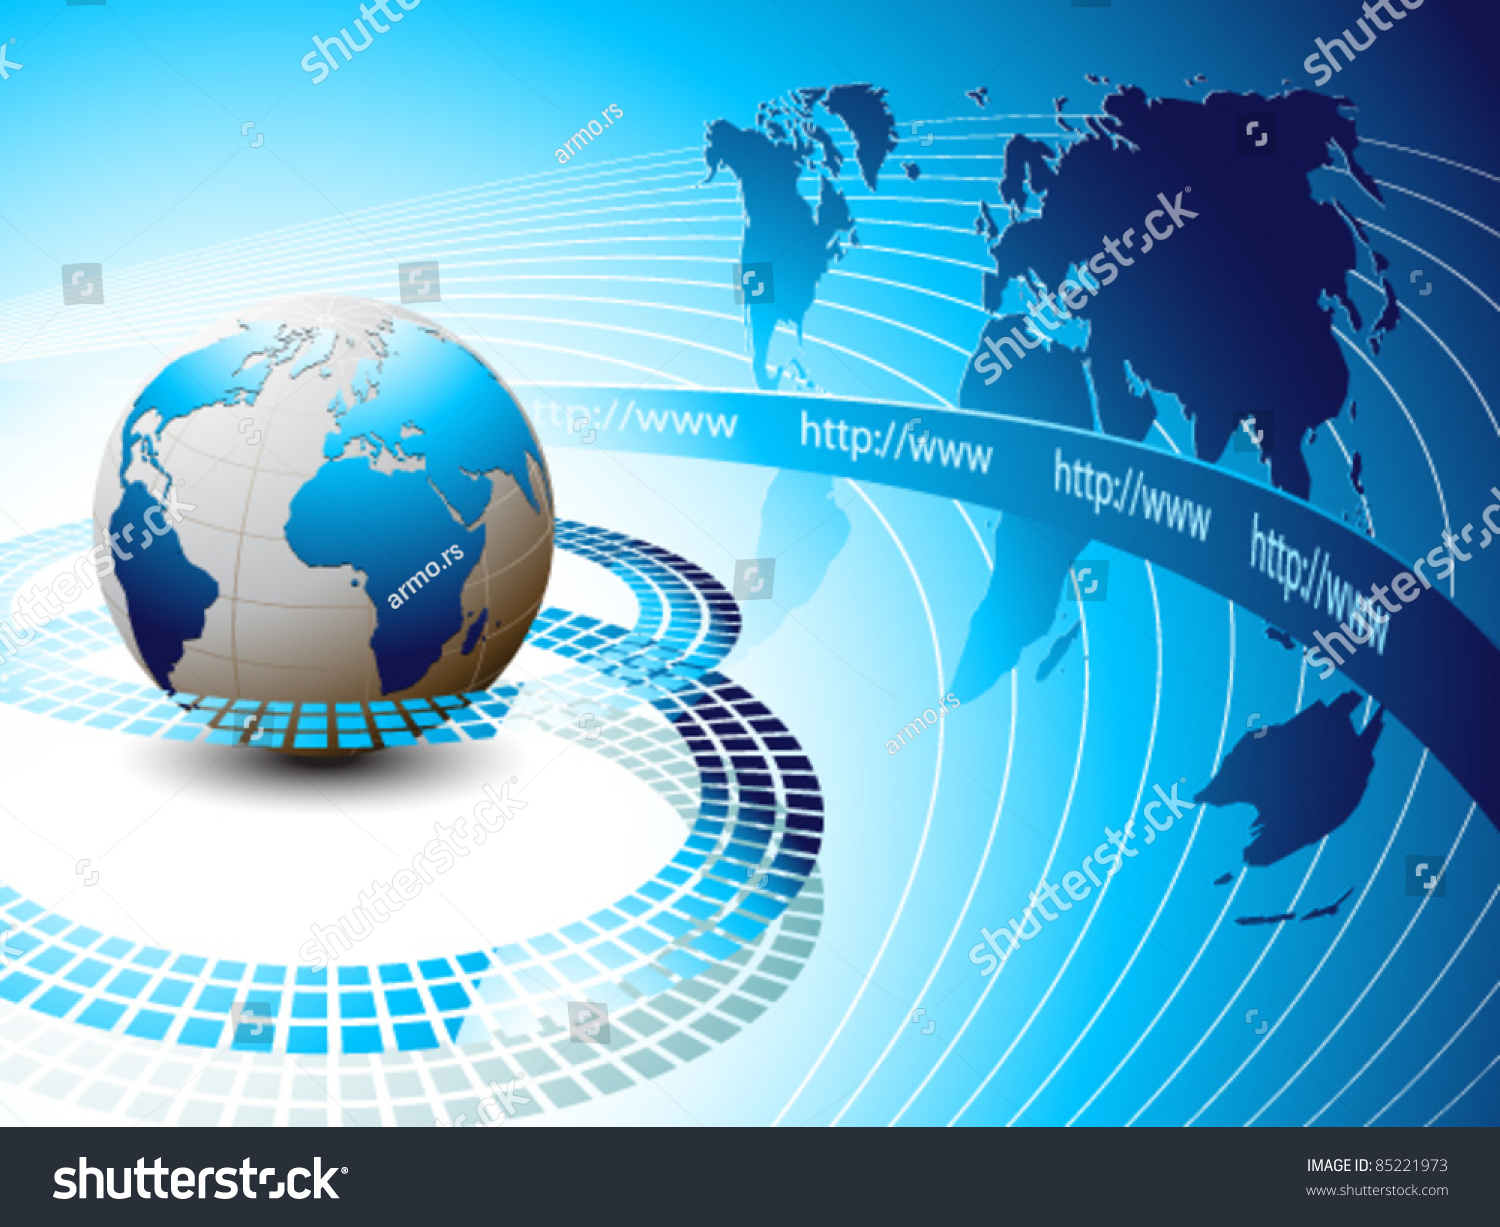 Internet Background With Earth Stock Vector Illustration